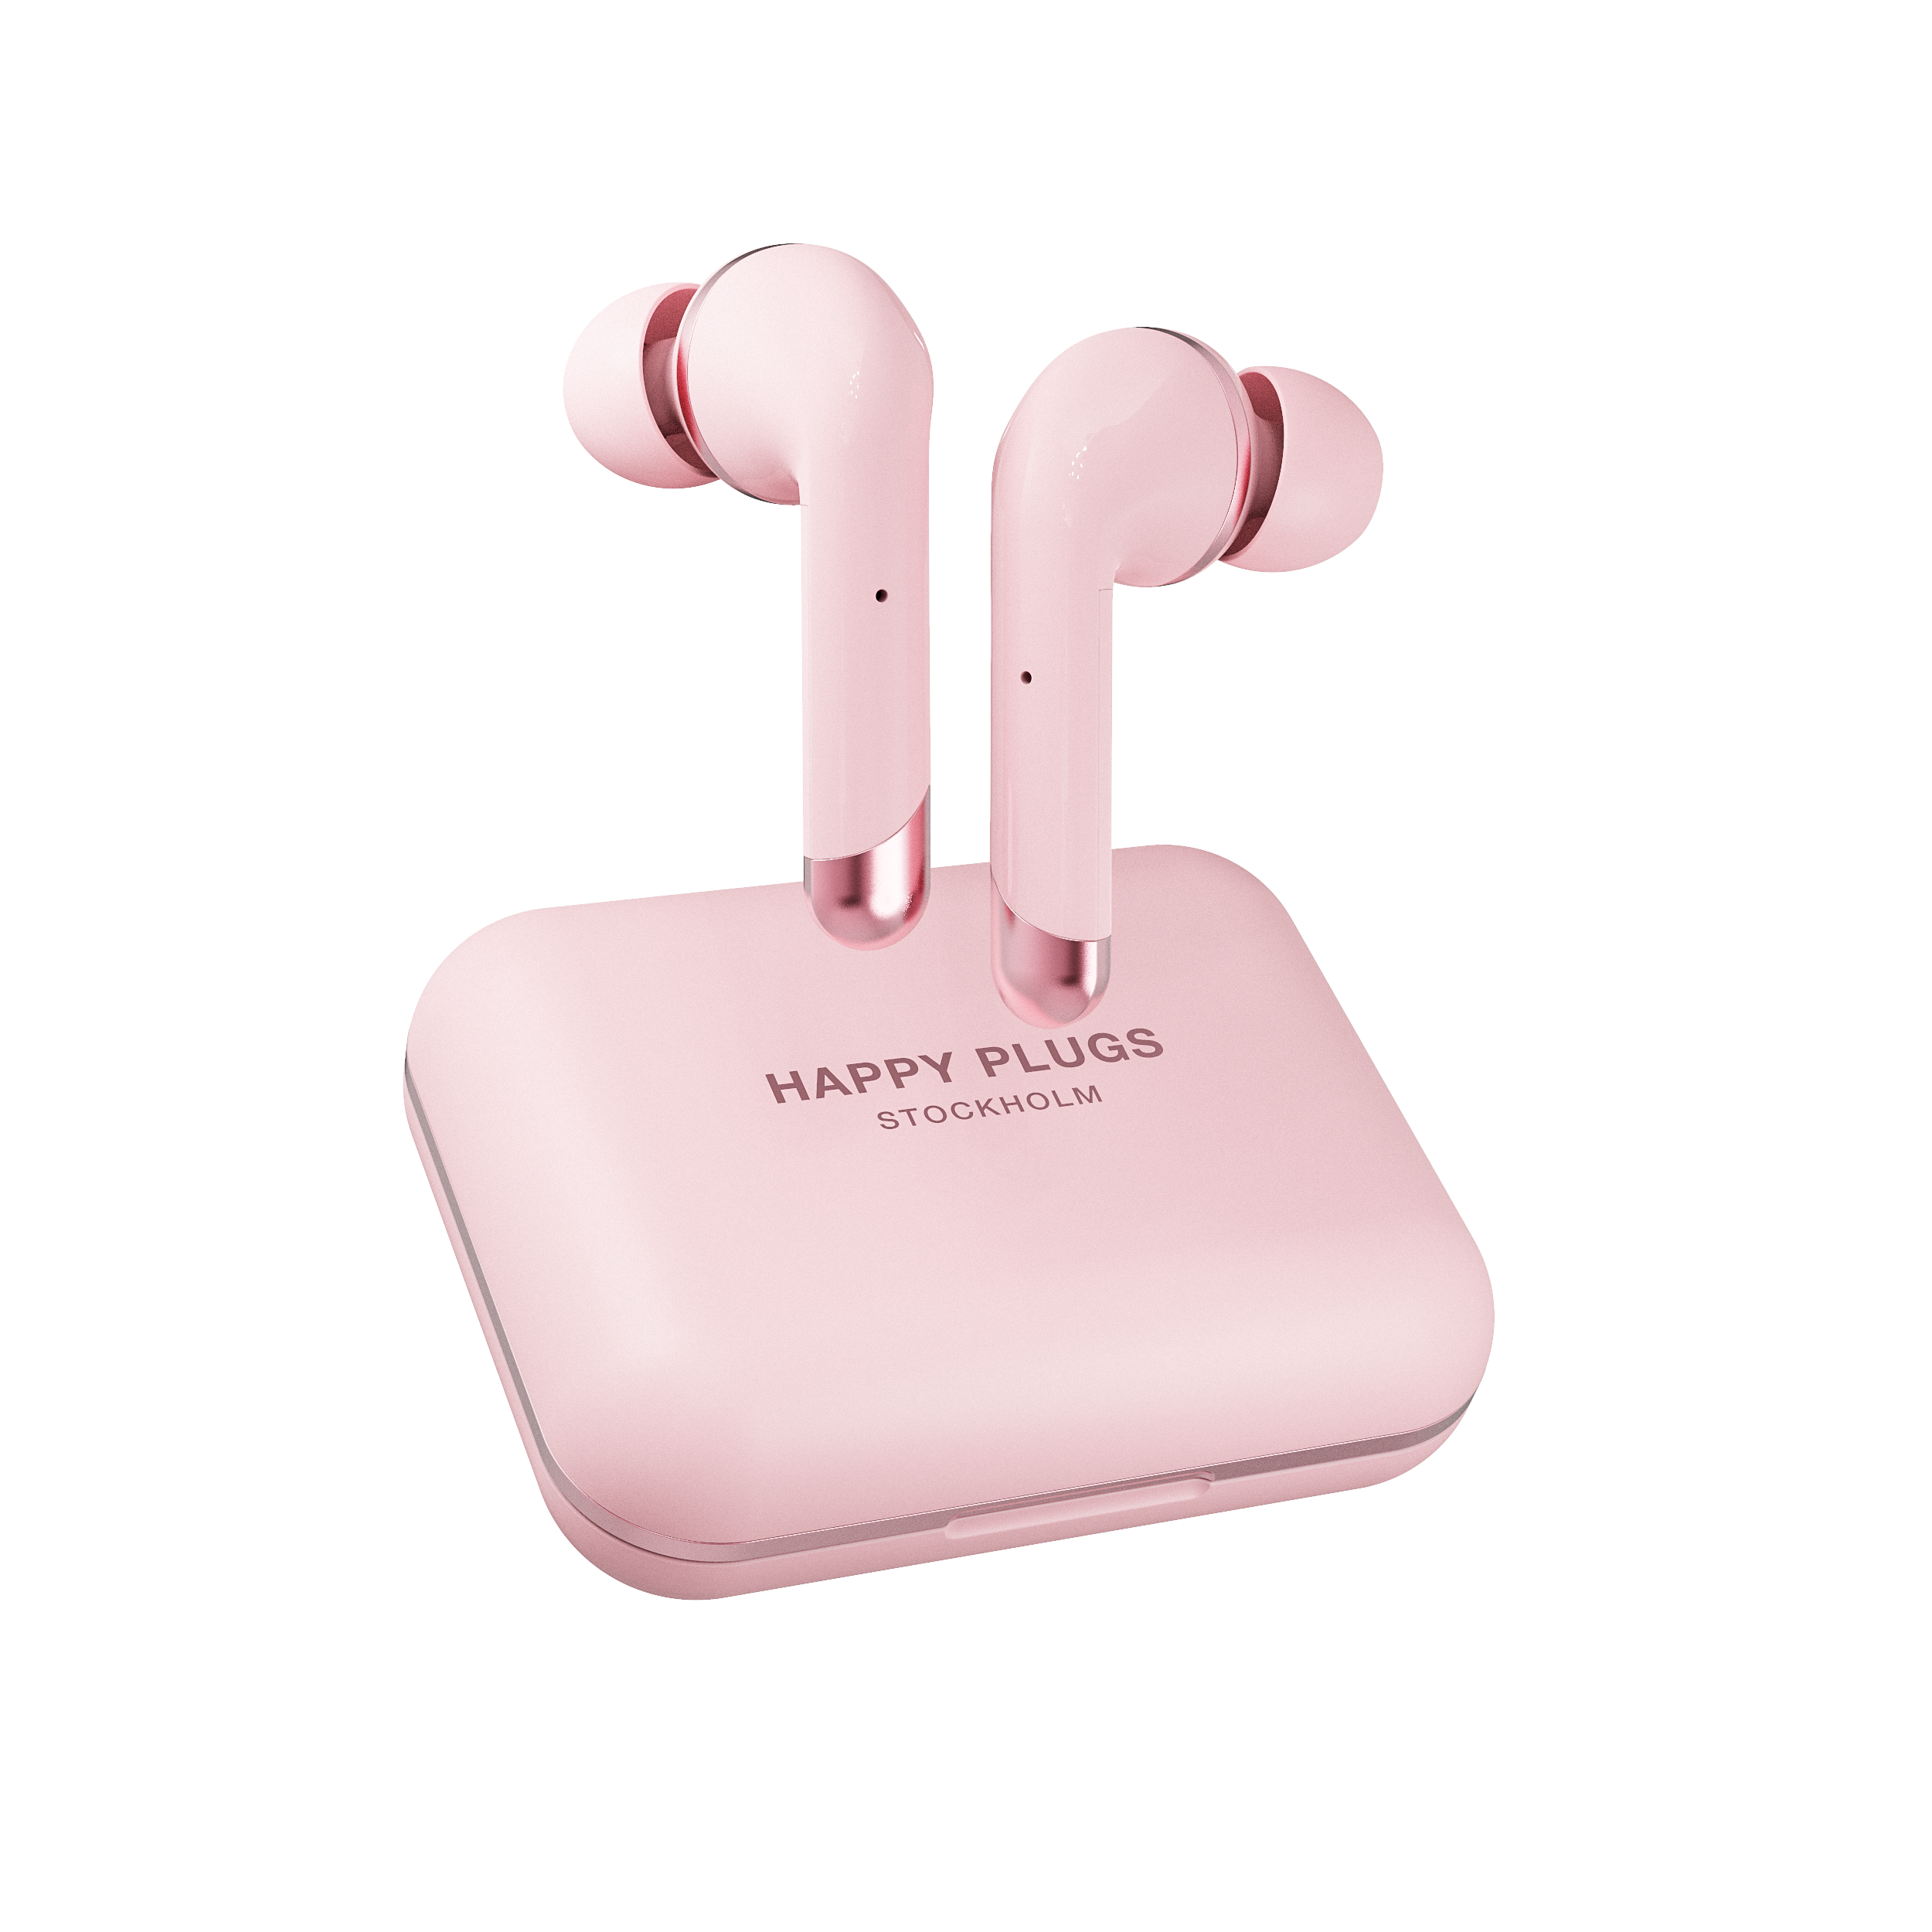 AIR 1 PLUS IN-EAR PINK GOLD 1663